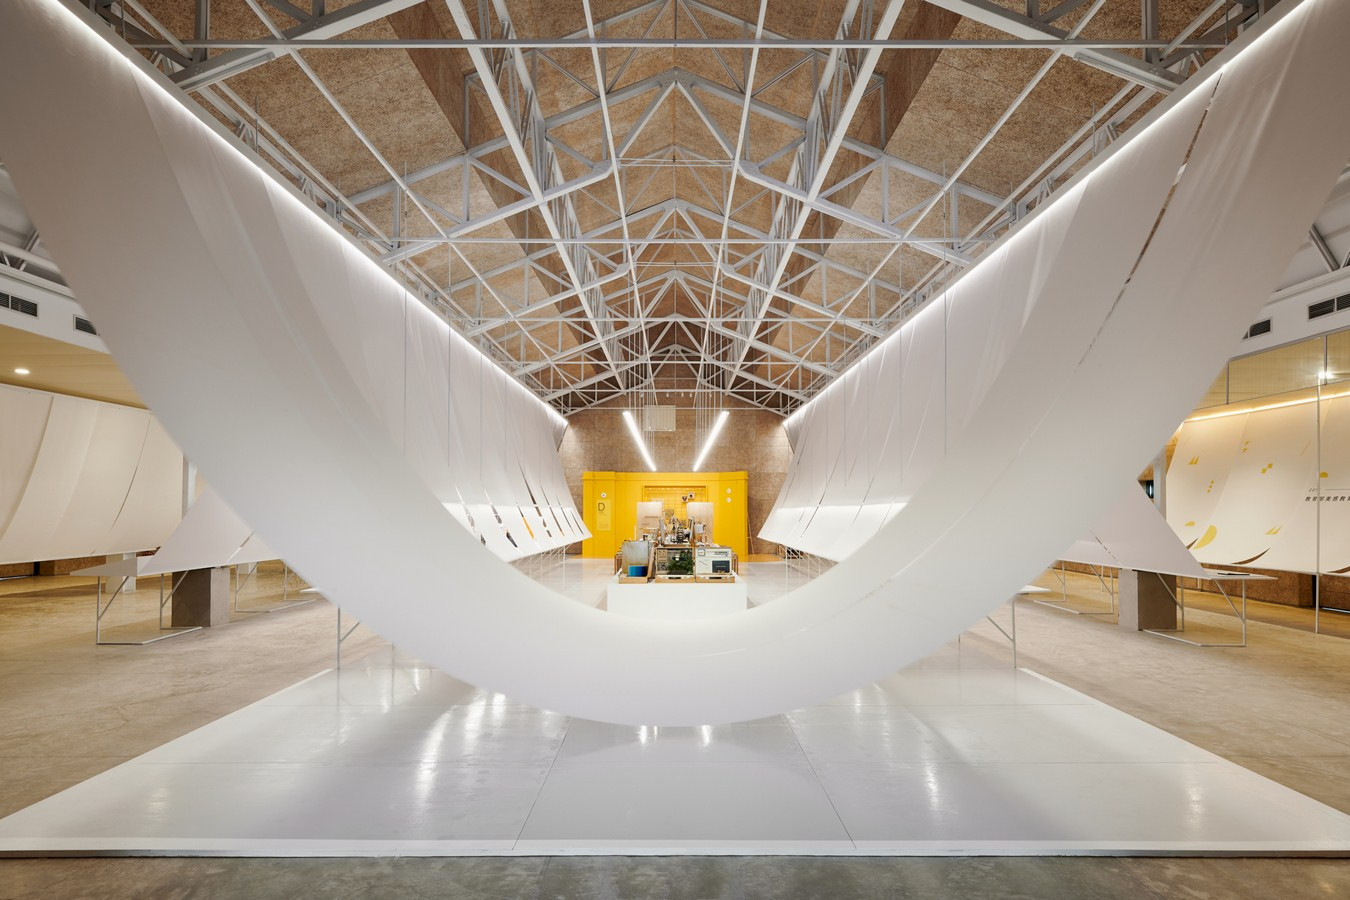 Paper Roof By B+P Architects - Sheet2